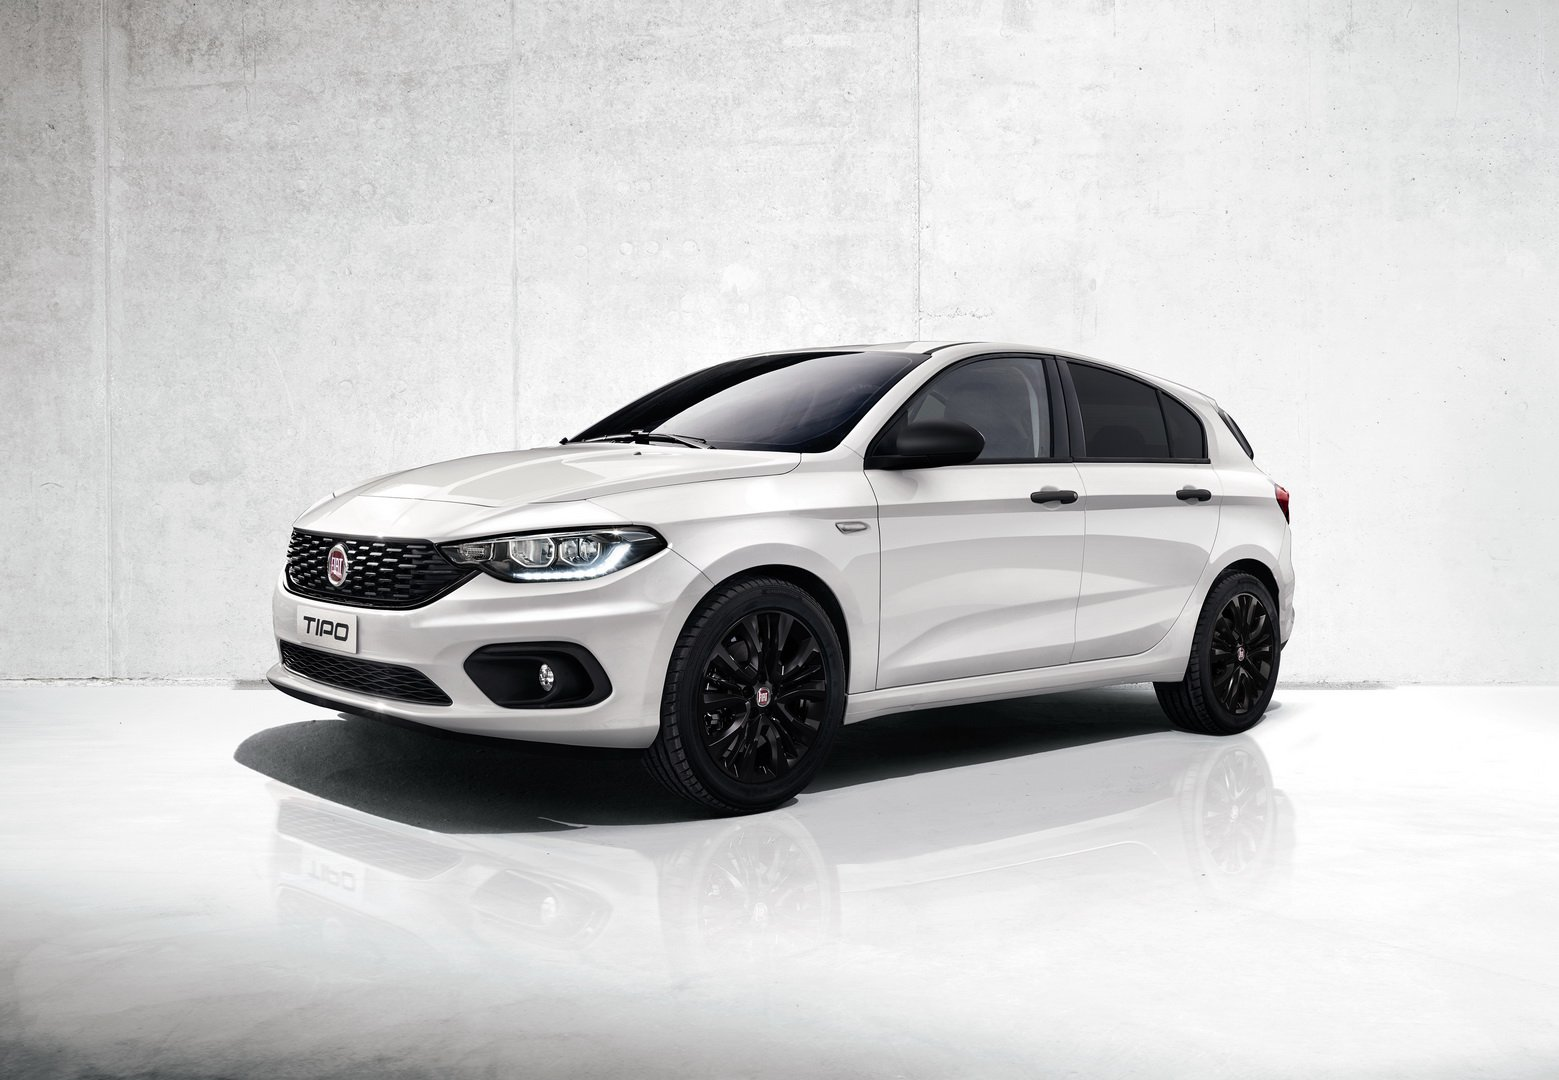 How To Break A Car Window >> Mirror, Street Versions Added To 2019 Fiat Tipo Lineup In Europe - autoevolution